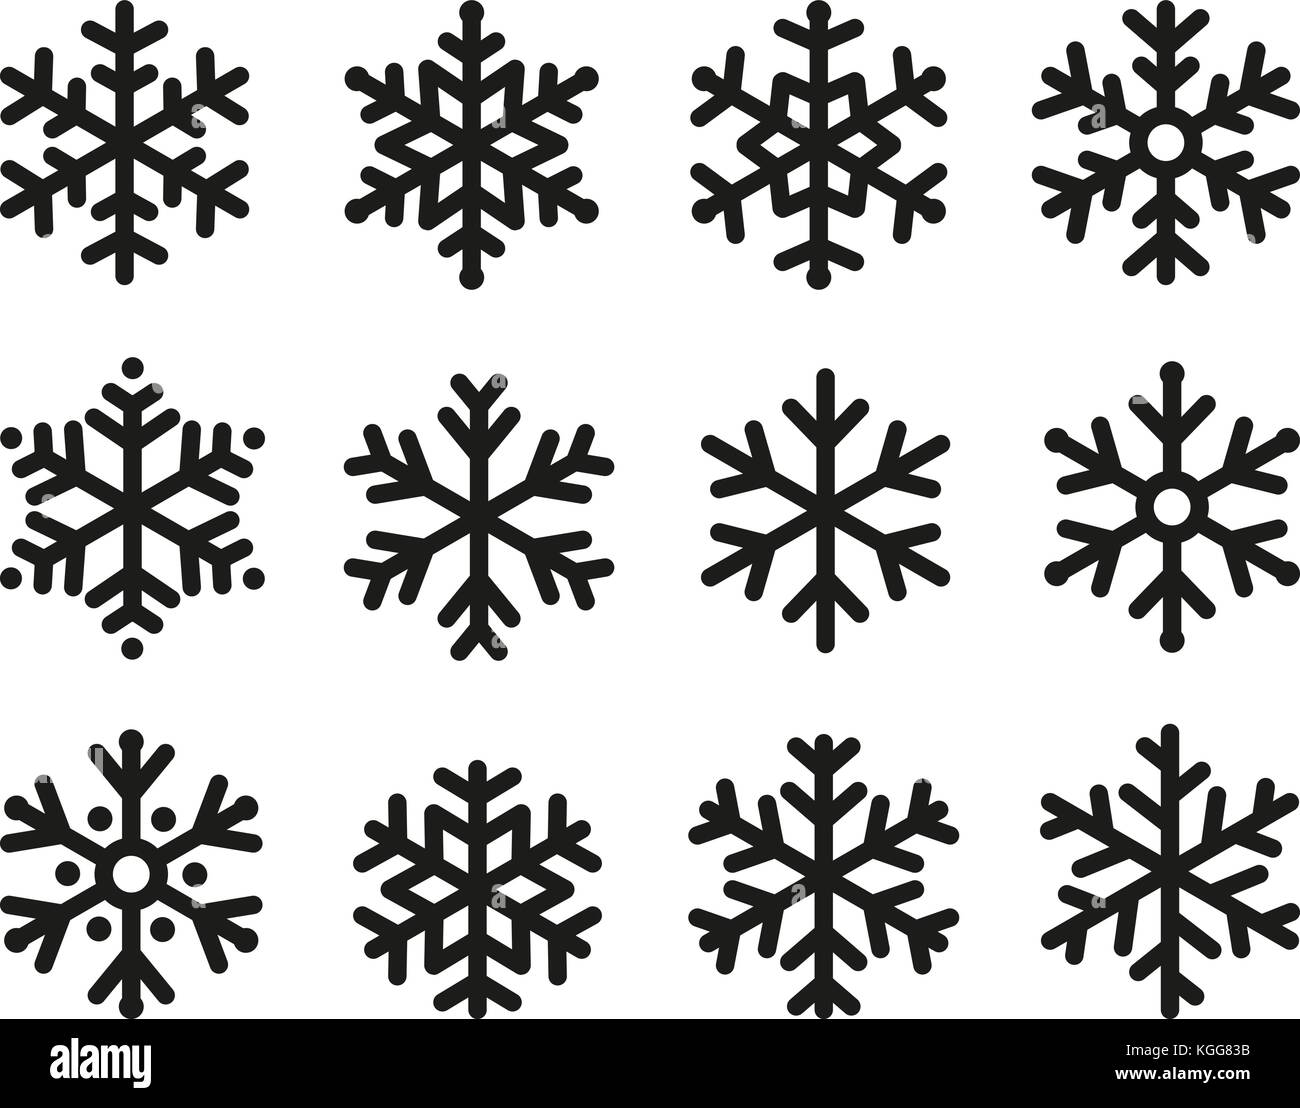 snowflakes icon set linear black design freeze symbol collection vector logo elements of decorating new years and christmas holidays